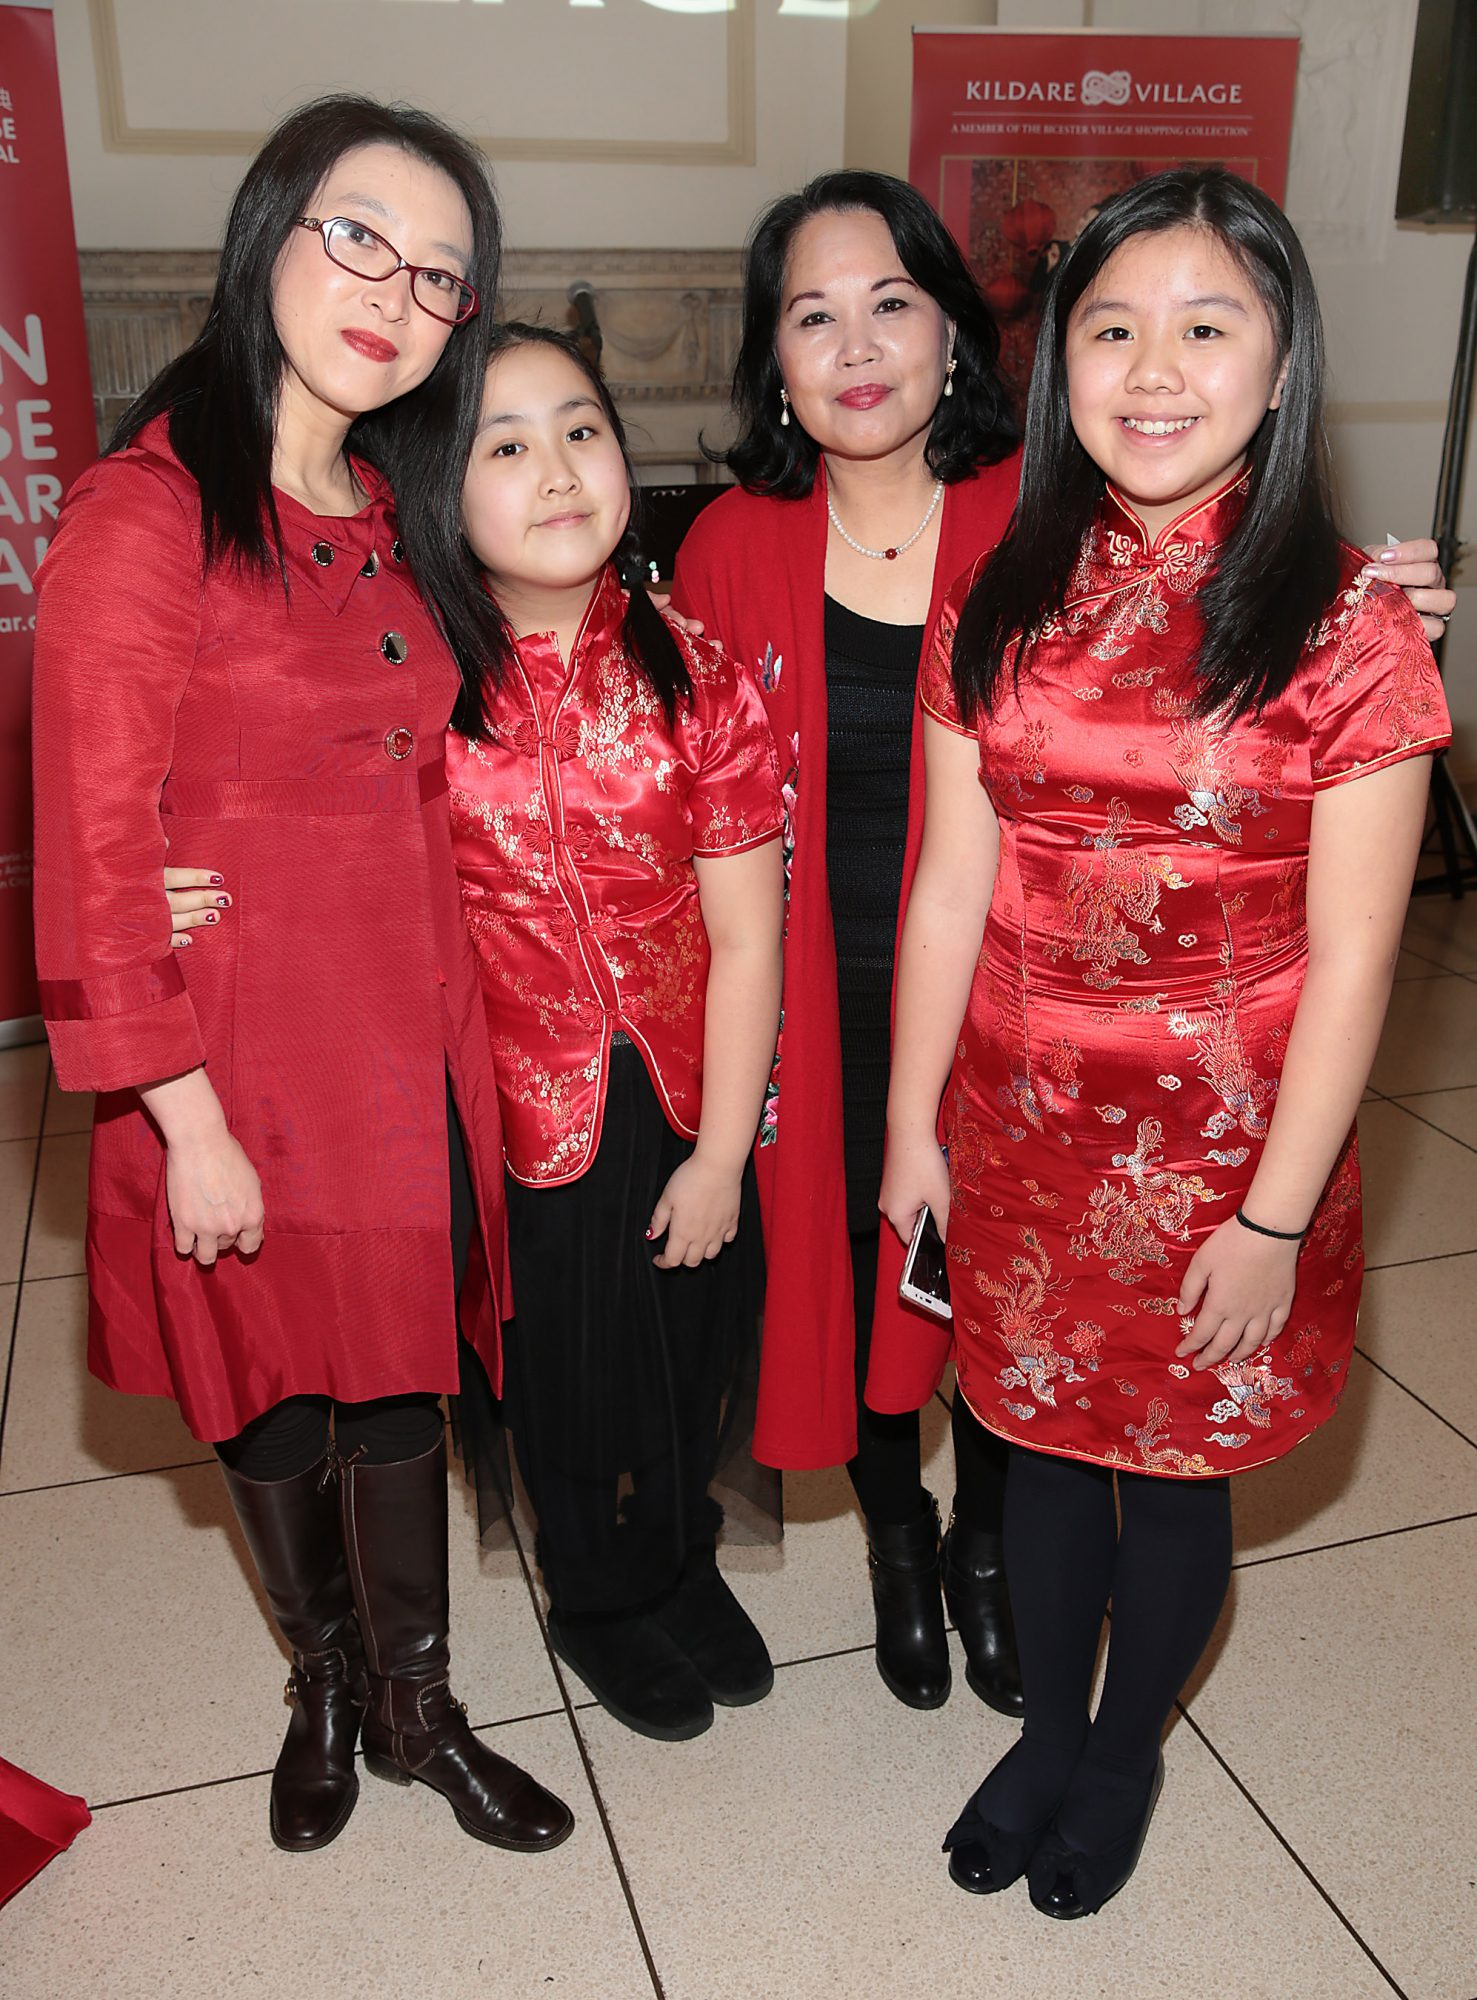 Yue Yu , Linxi Yu ,Mei Tsang and Josephine Choo pictured at the official opening event of Dublin Chinese New Year Festival 2019 at The Hugh Lane Gallery sponsored by Kildare Village. Dublin Chinese New Year Festival runs until 17th February for more see www.dublinchinesenewyear.com   Pic Brian McEvoy